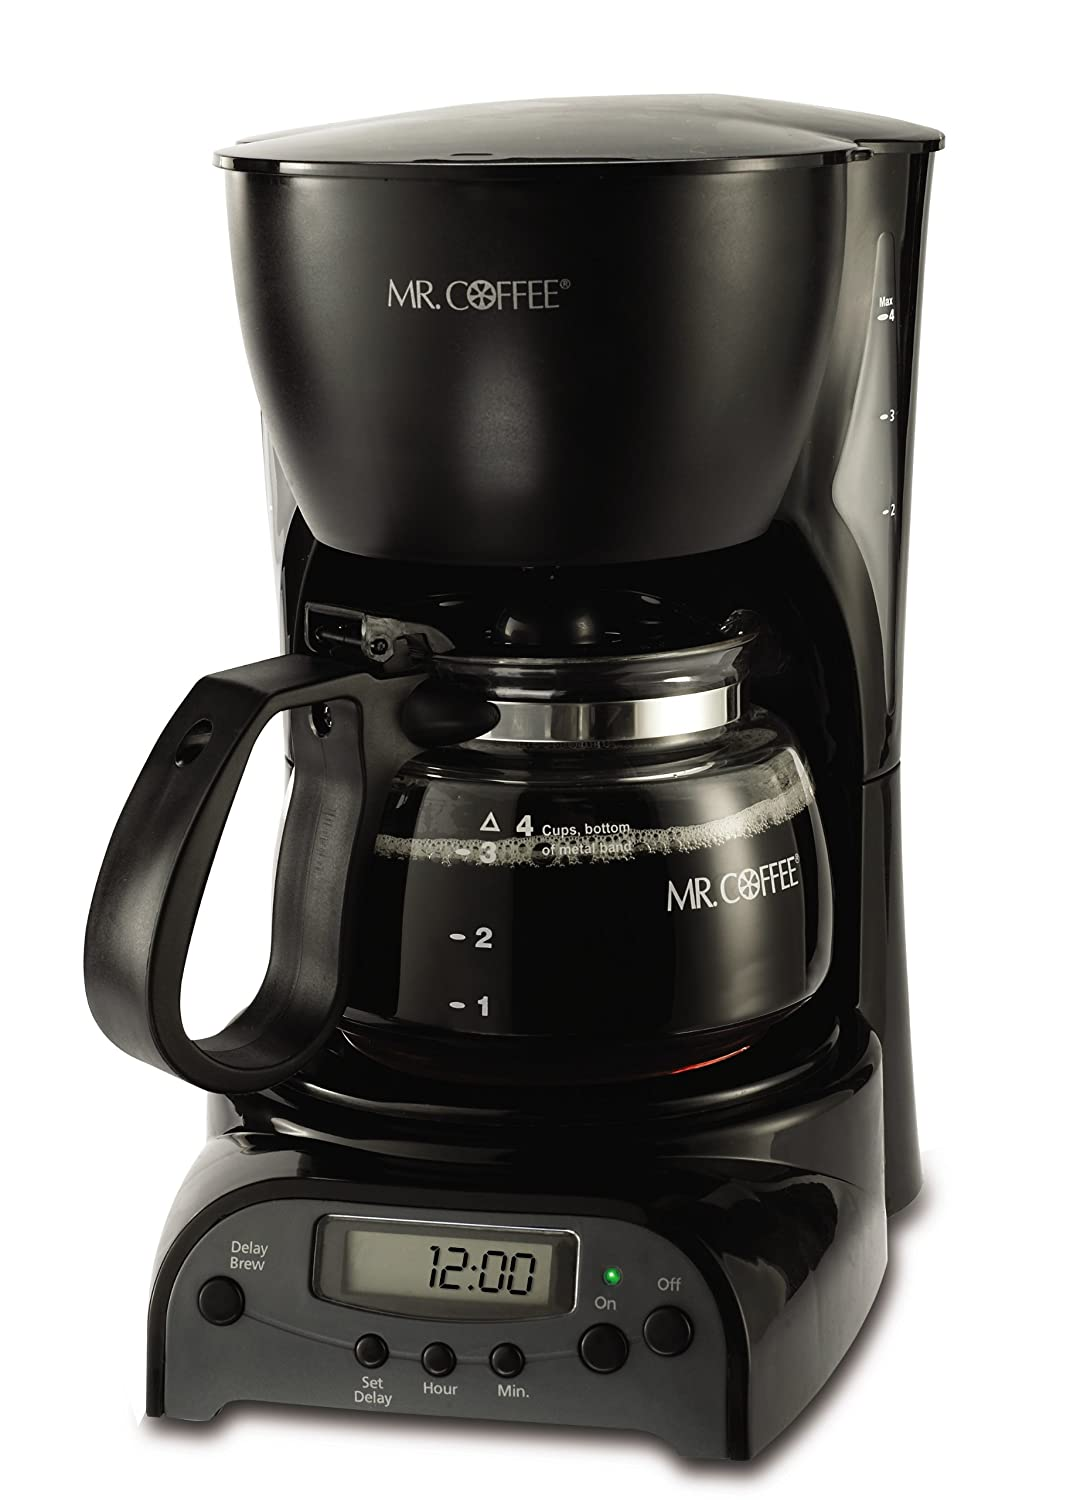 Coffee Maker Reviews 4 Cup : Mr Coffee DRX5 4-Cup Programmable Coffeemaker Coffee Maker Brewer Espresso Black 72179228134 eBay